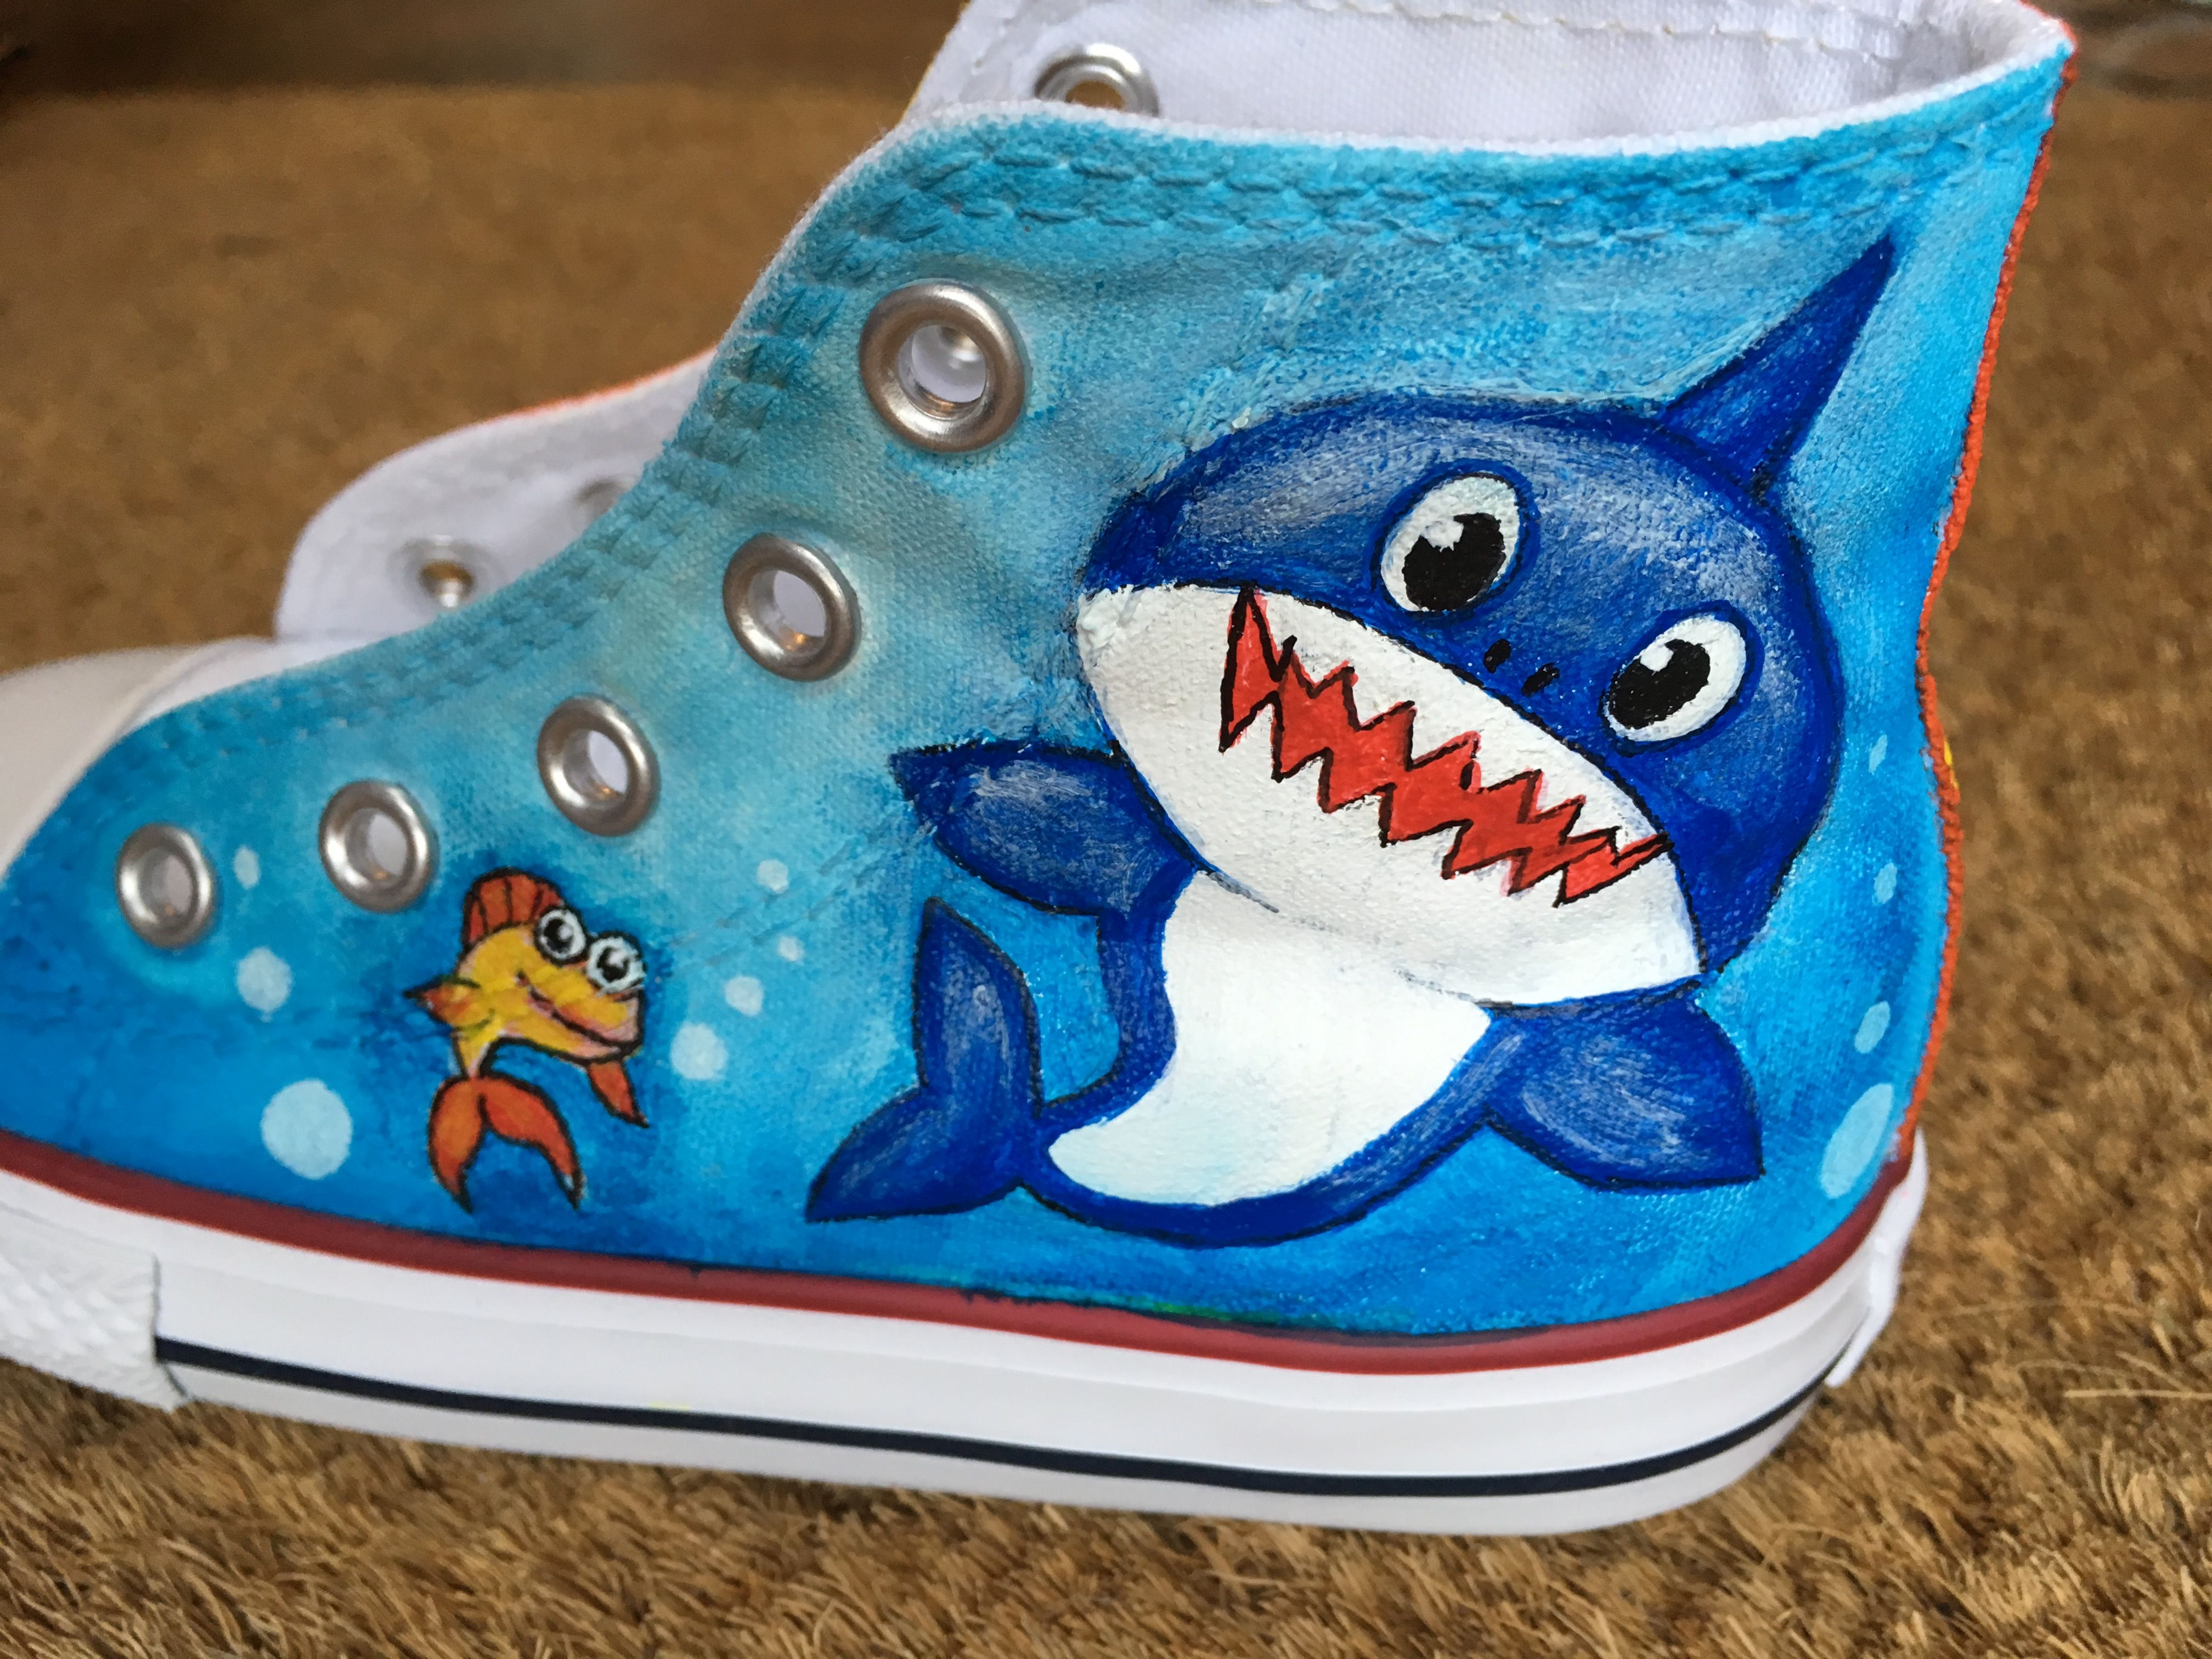 26ef9a5f10c Baby Shark painted shoes, painted shoes, painted converse, @supershoesuk